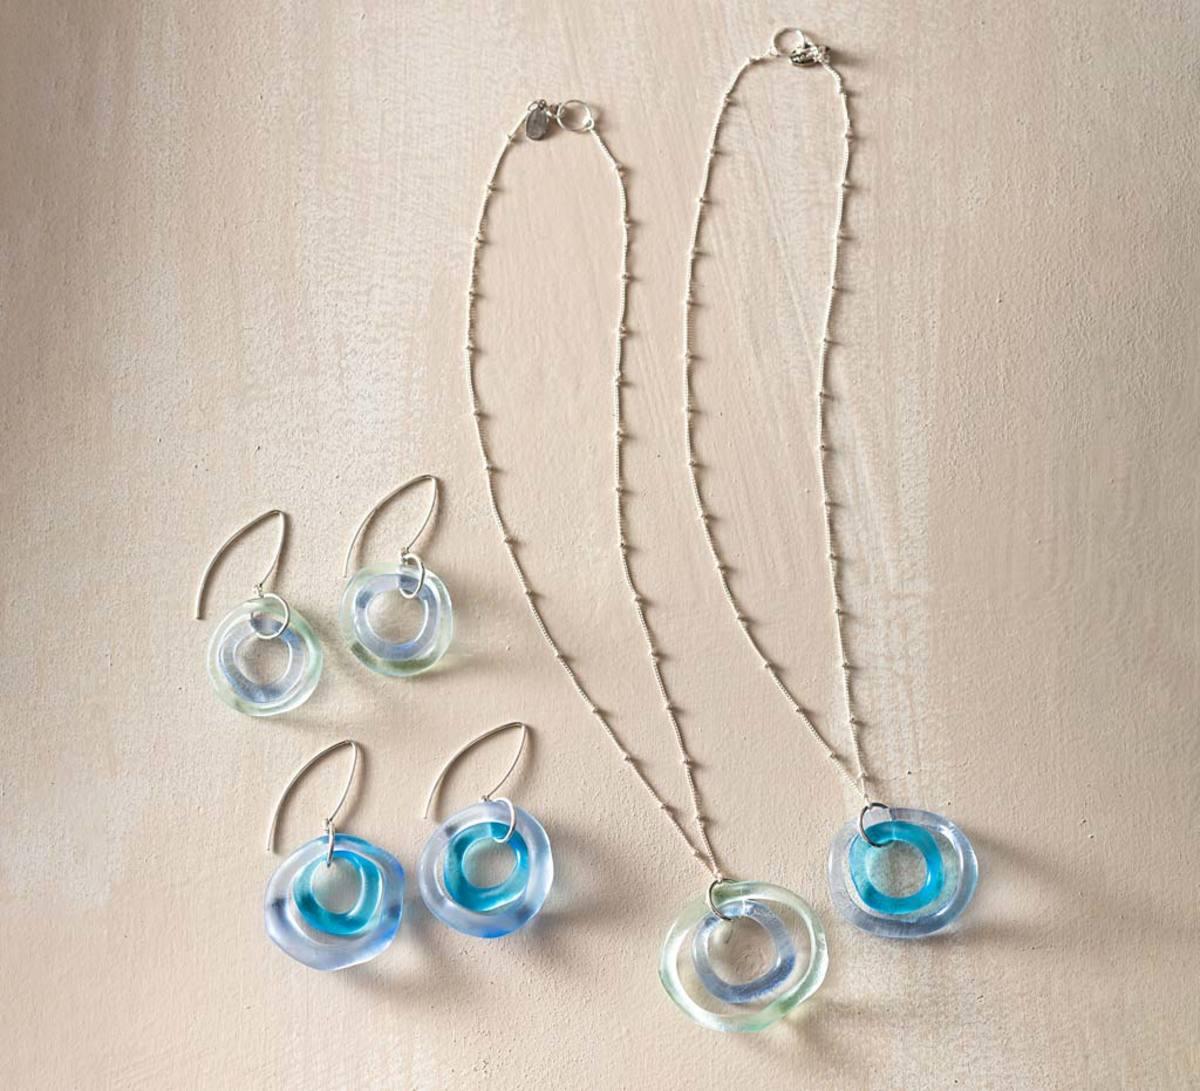 Recycled Wave Glass Jewelry Collection